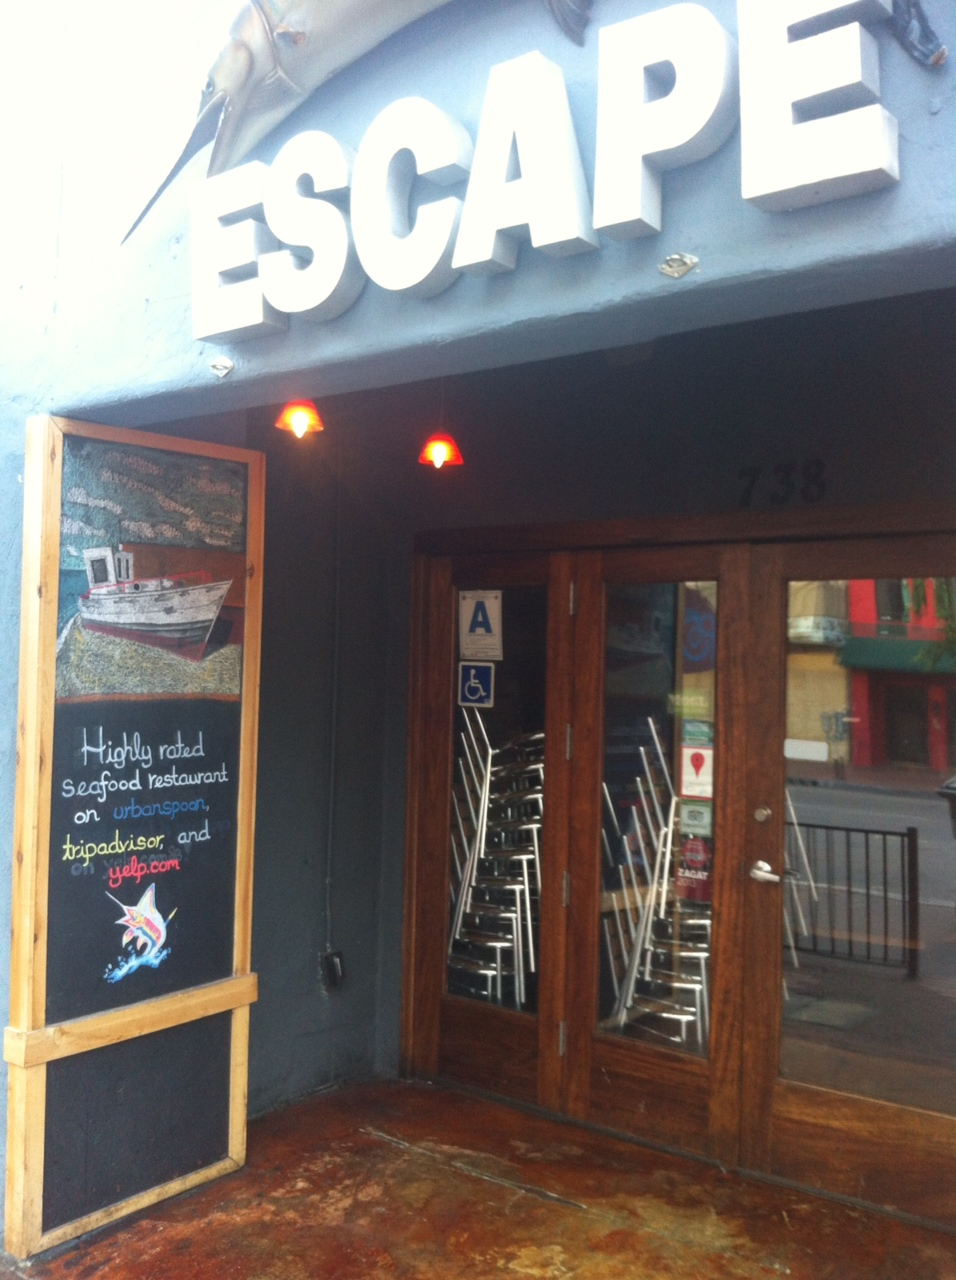 Escape restaurant in San Diego highlights review sites in window... and chalkboard!